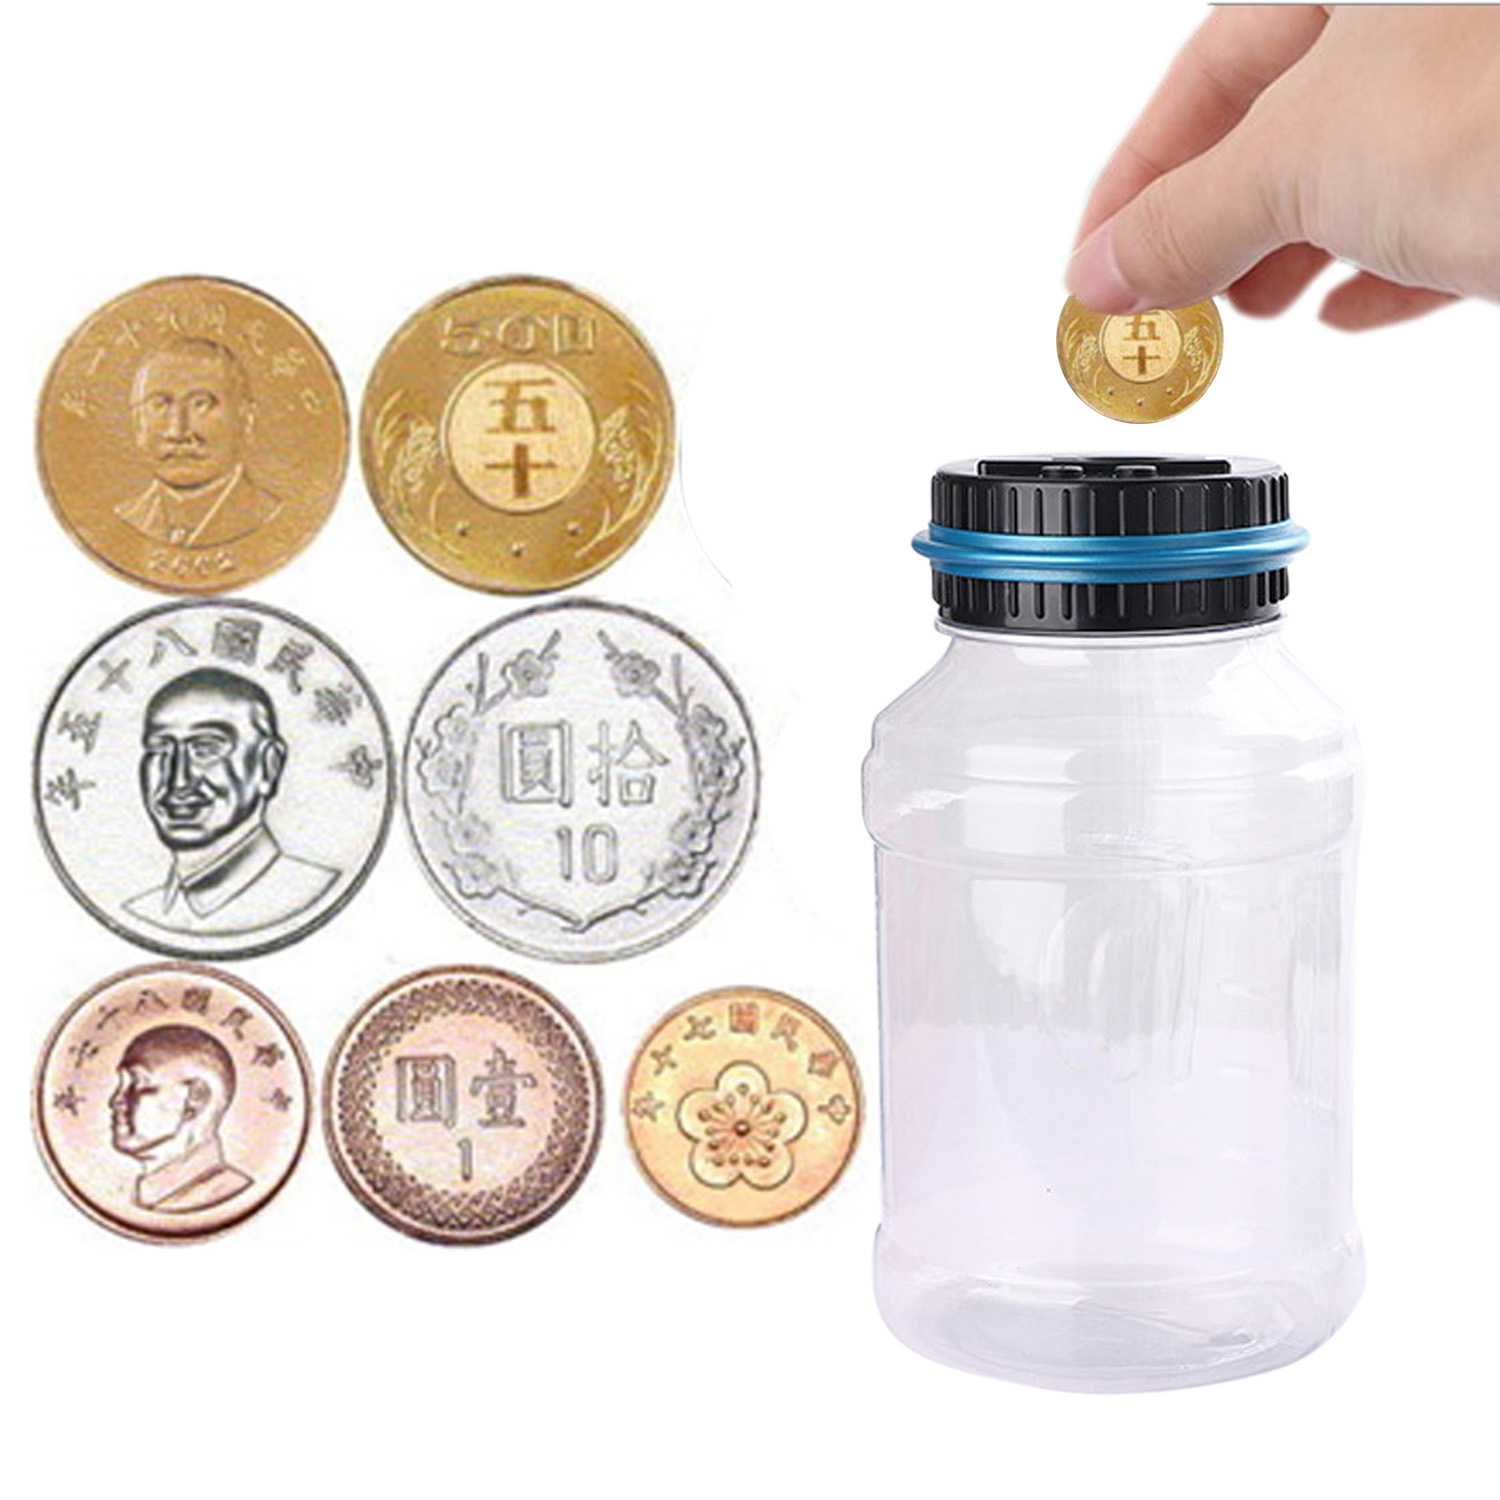 Behogar Automatic Counting Digital Piggy Coin Money Bank Box Counter Safe Coin Saving Money with LCD Display For 800-1000 Coins